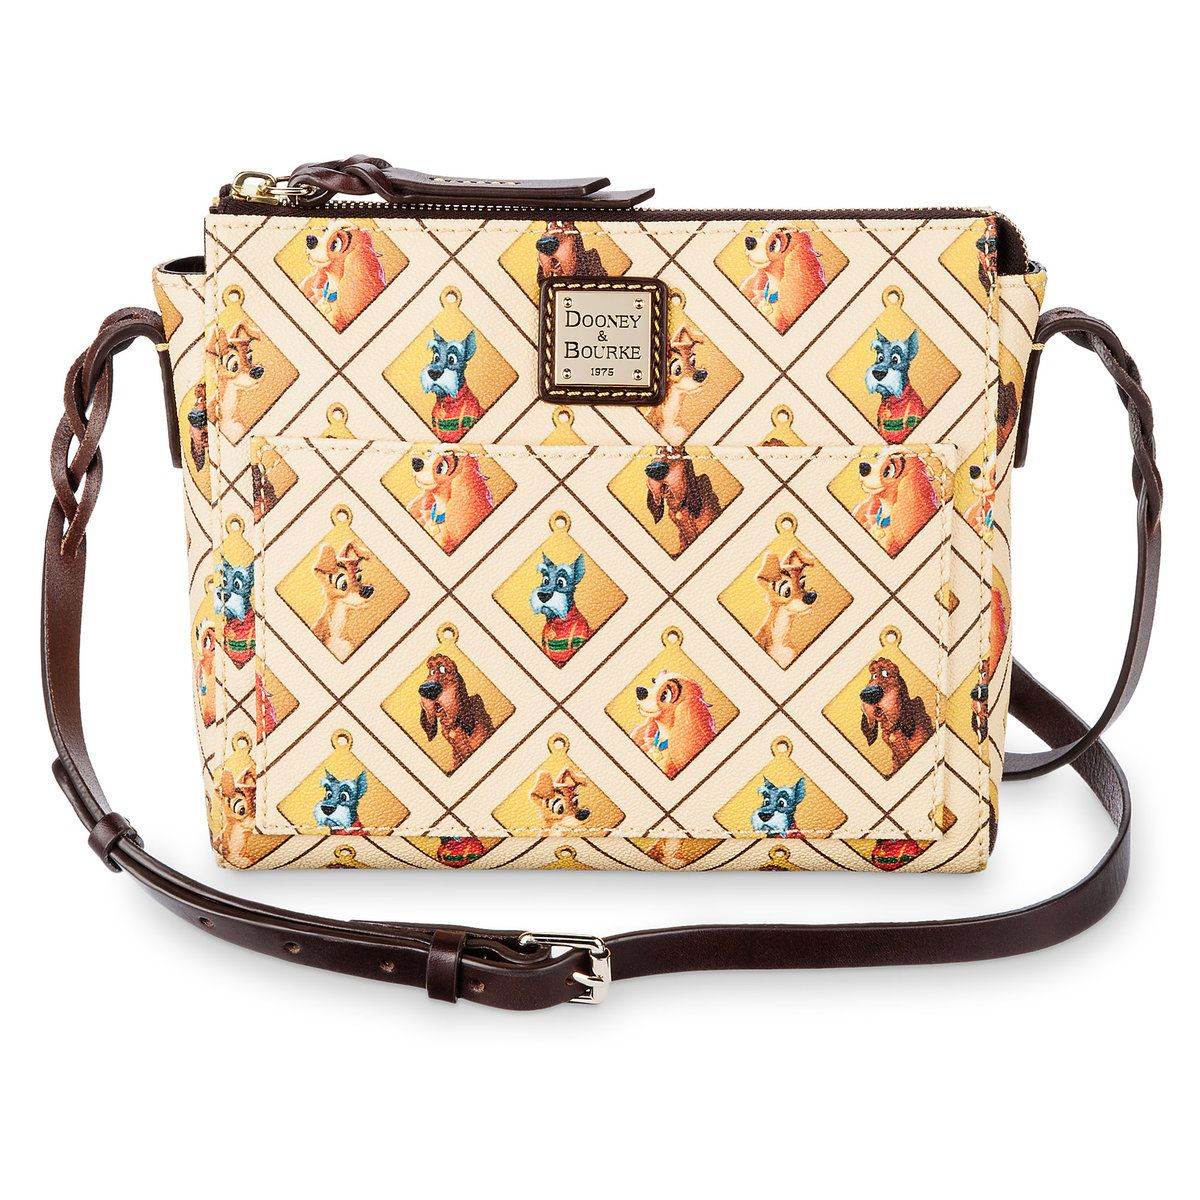 bc3e28860867 ... Dooney and Bourke bags. New Disney Dog Dooneys Have Arrived Featuring  Lady and The Tramp!